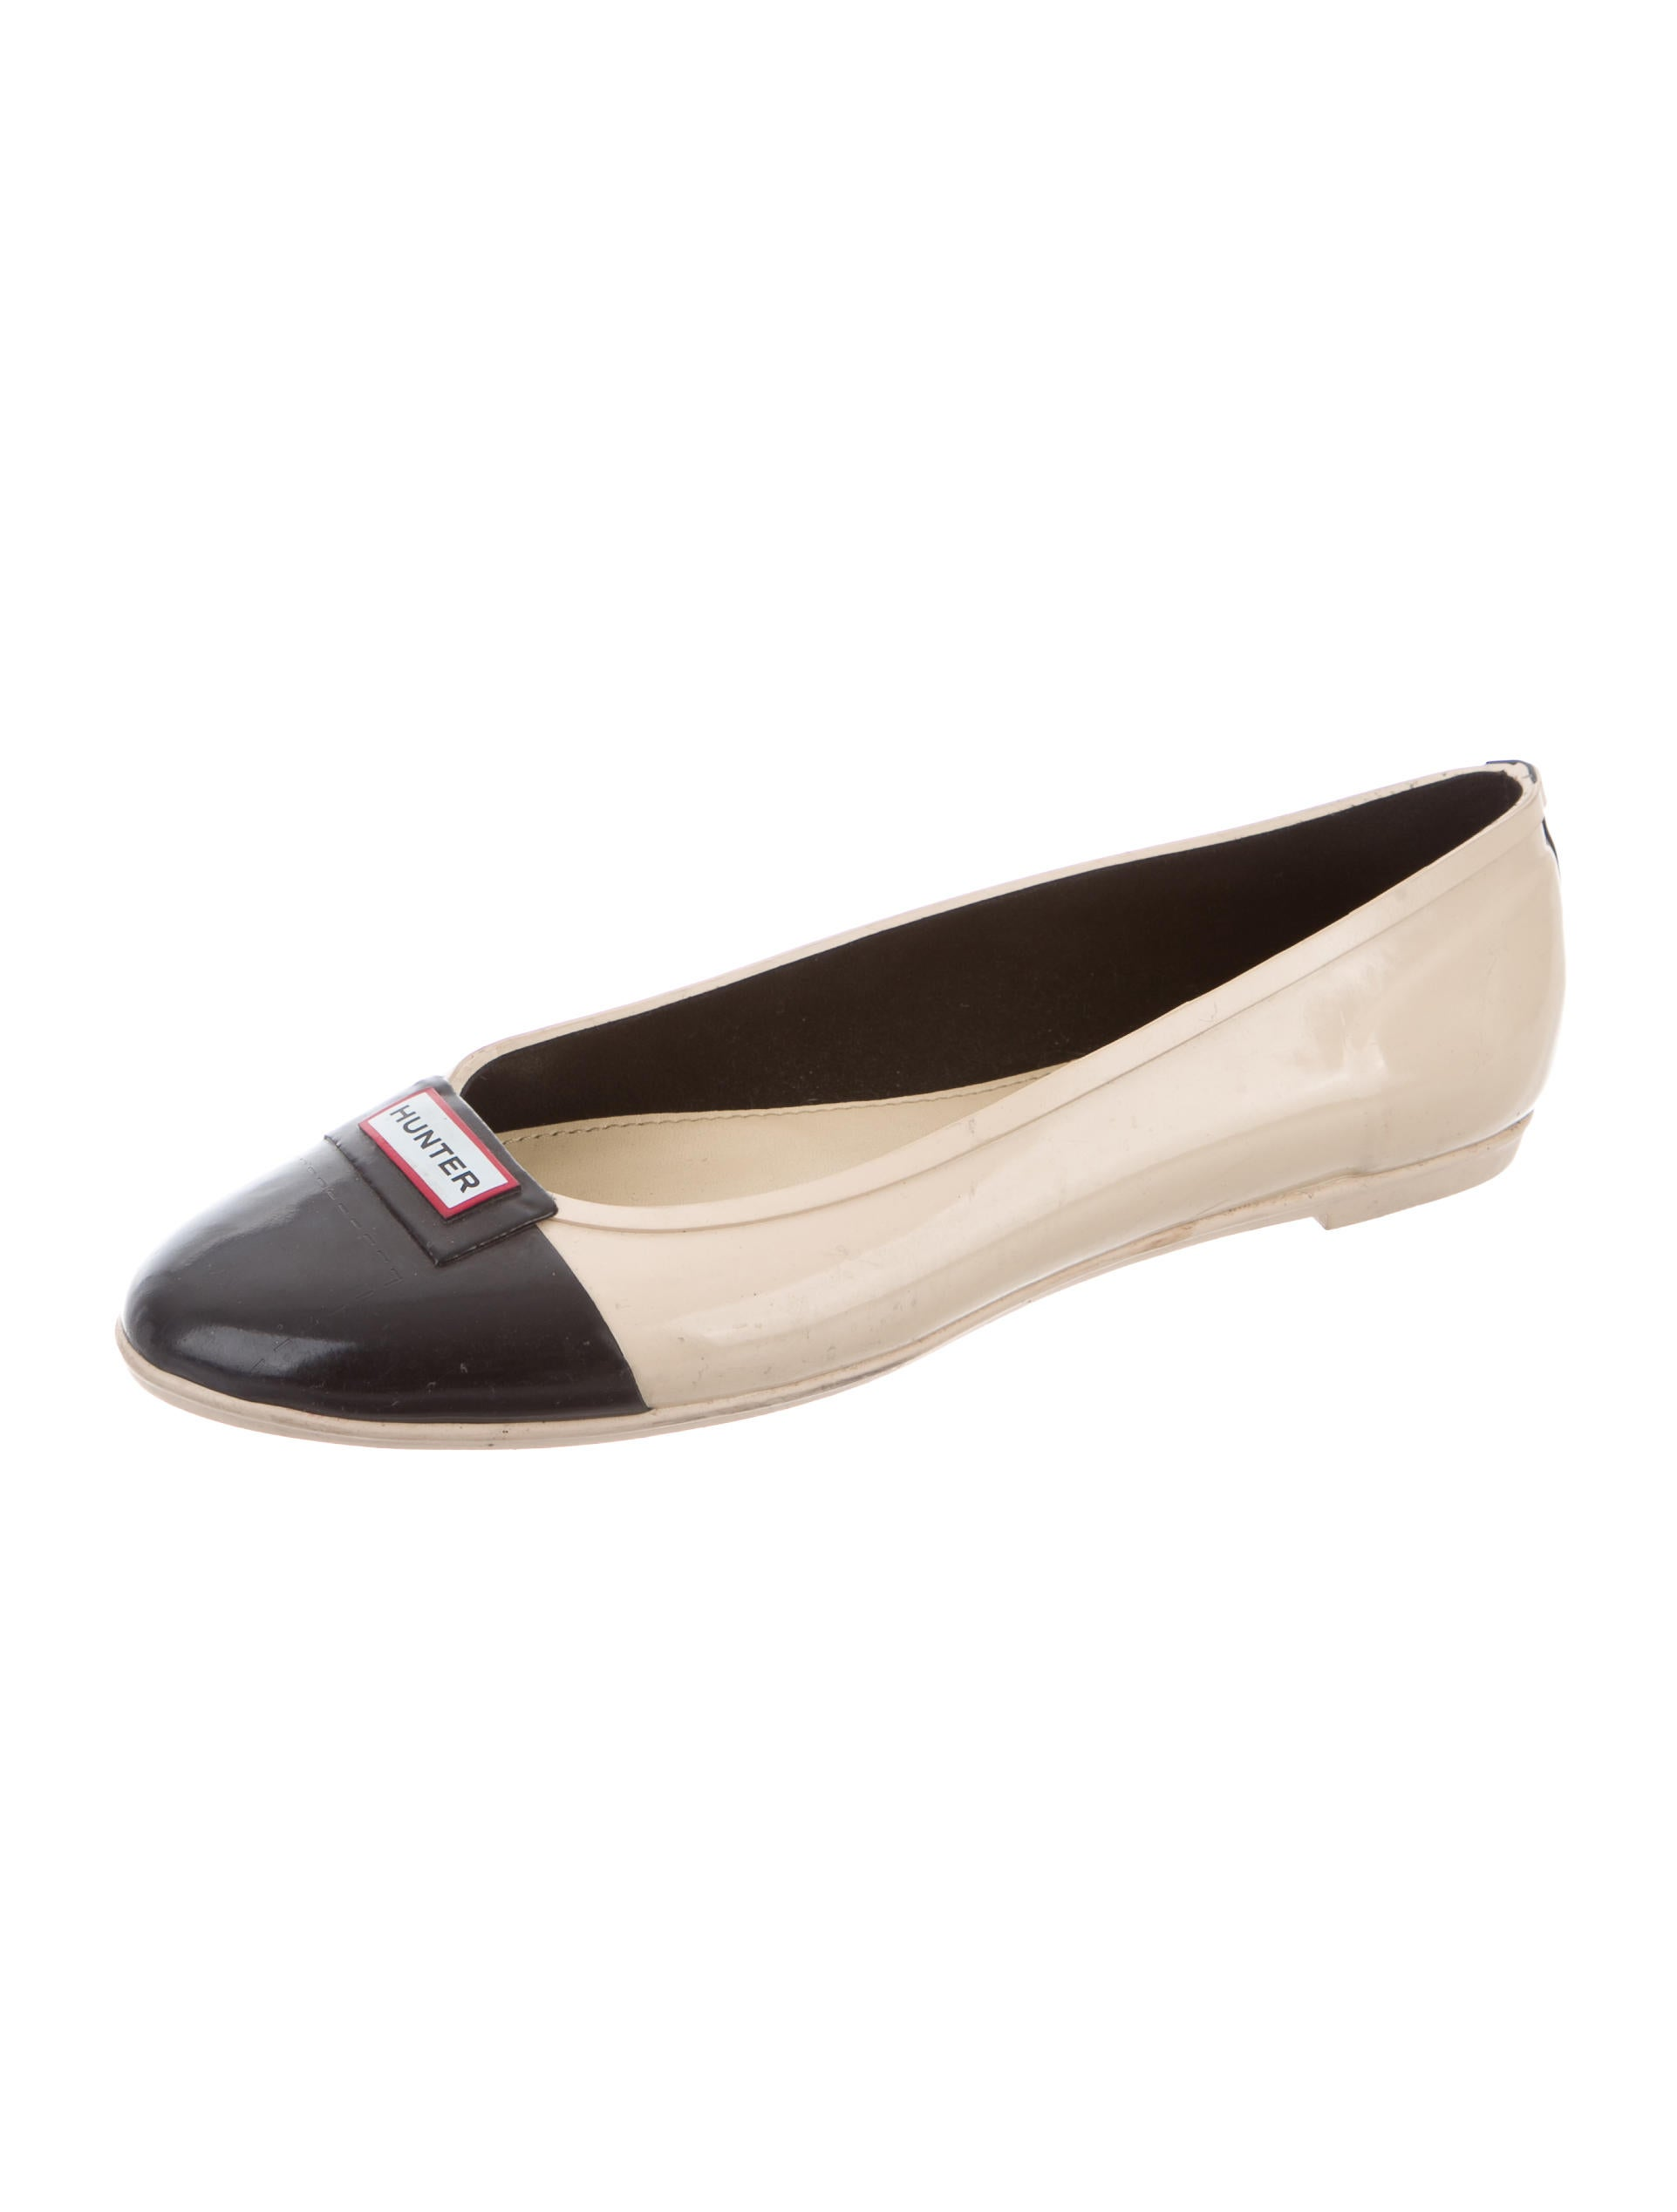 Shop eBay for great deals on Rubber Flat (0 to 1/2 in.) Casual Shoes for Women. You'll find new or used products in Rubber Flat (0 to 1/2 in.) Casual Shoes for Women on .